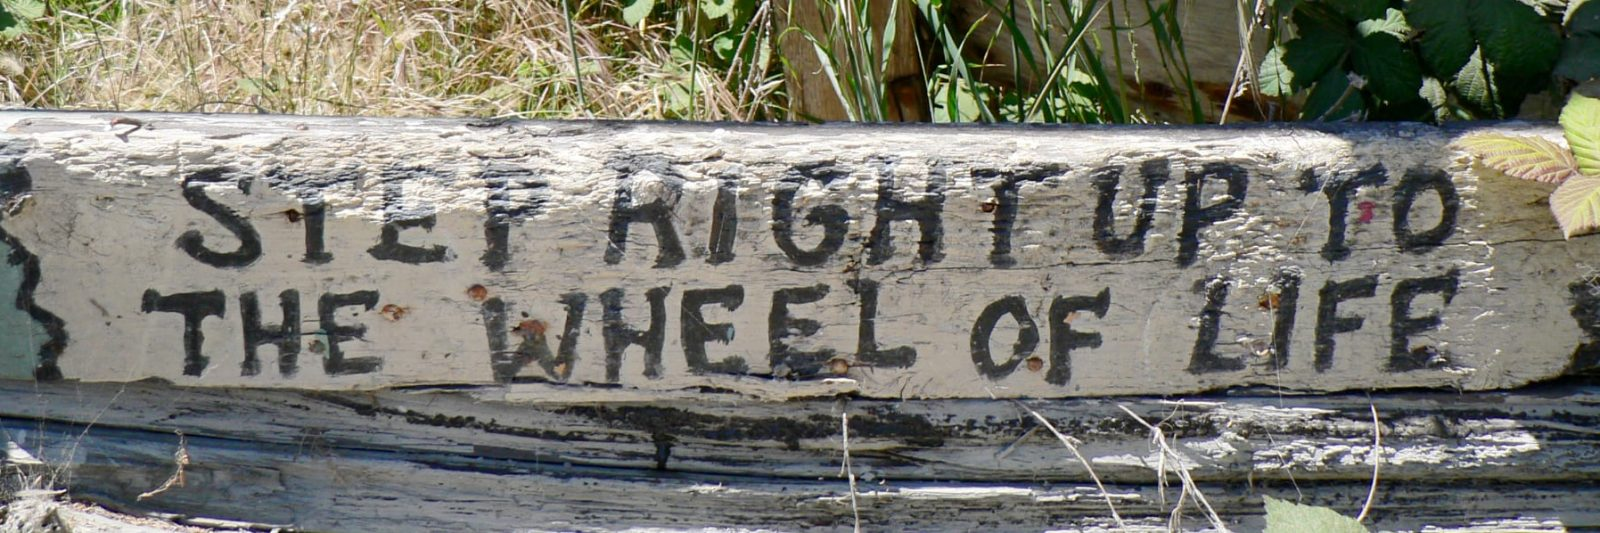 Photo: Step right up to the wheel of life